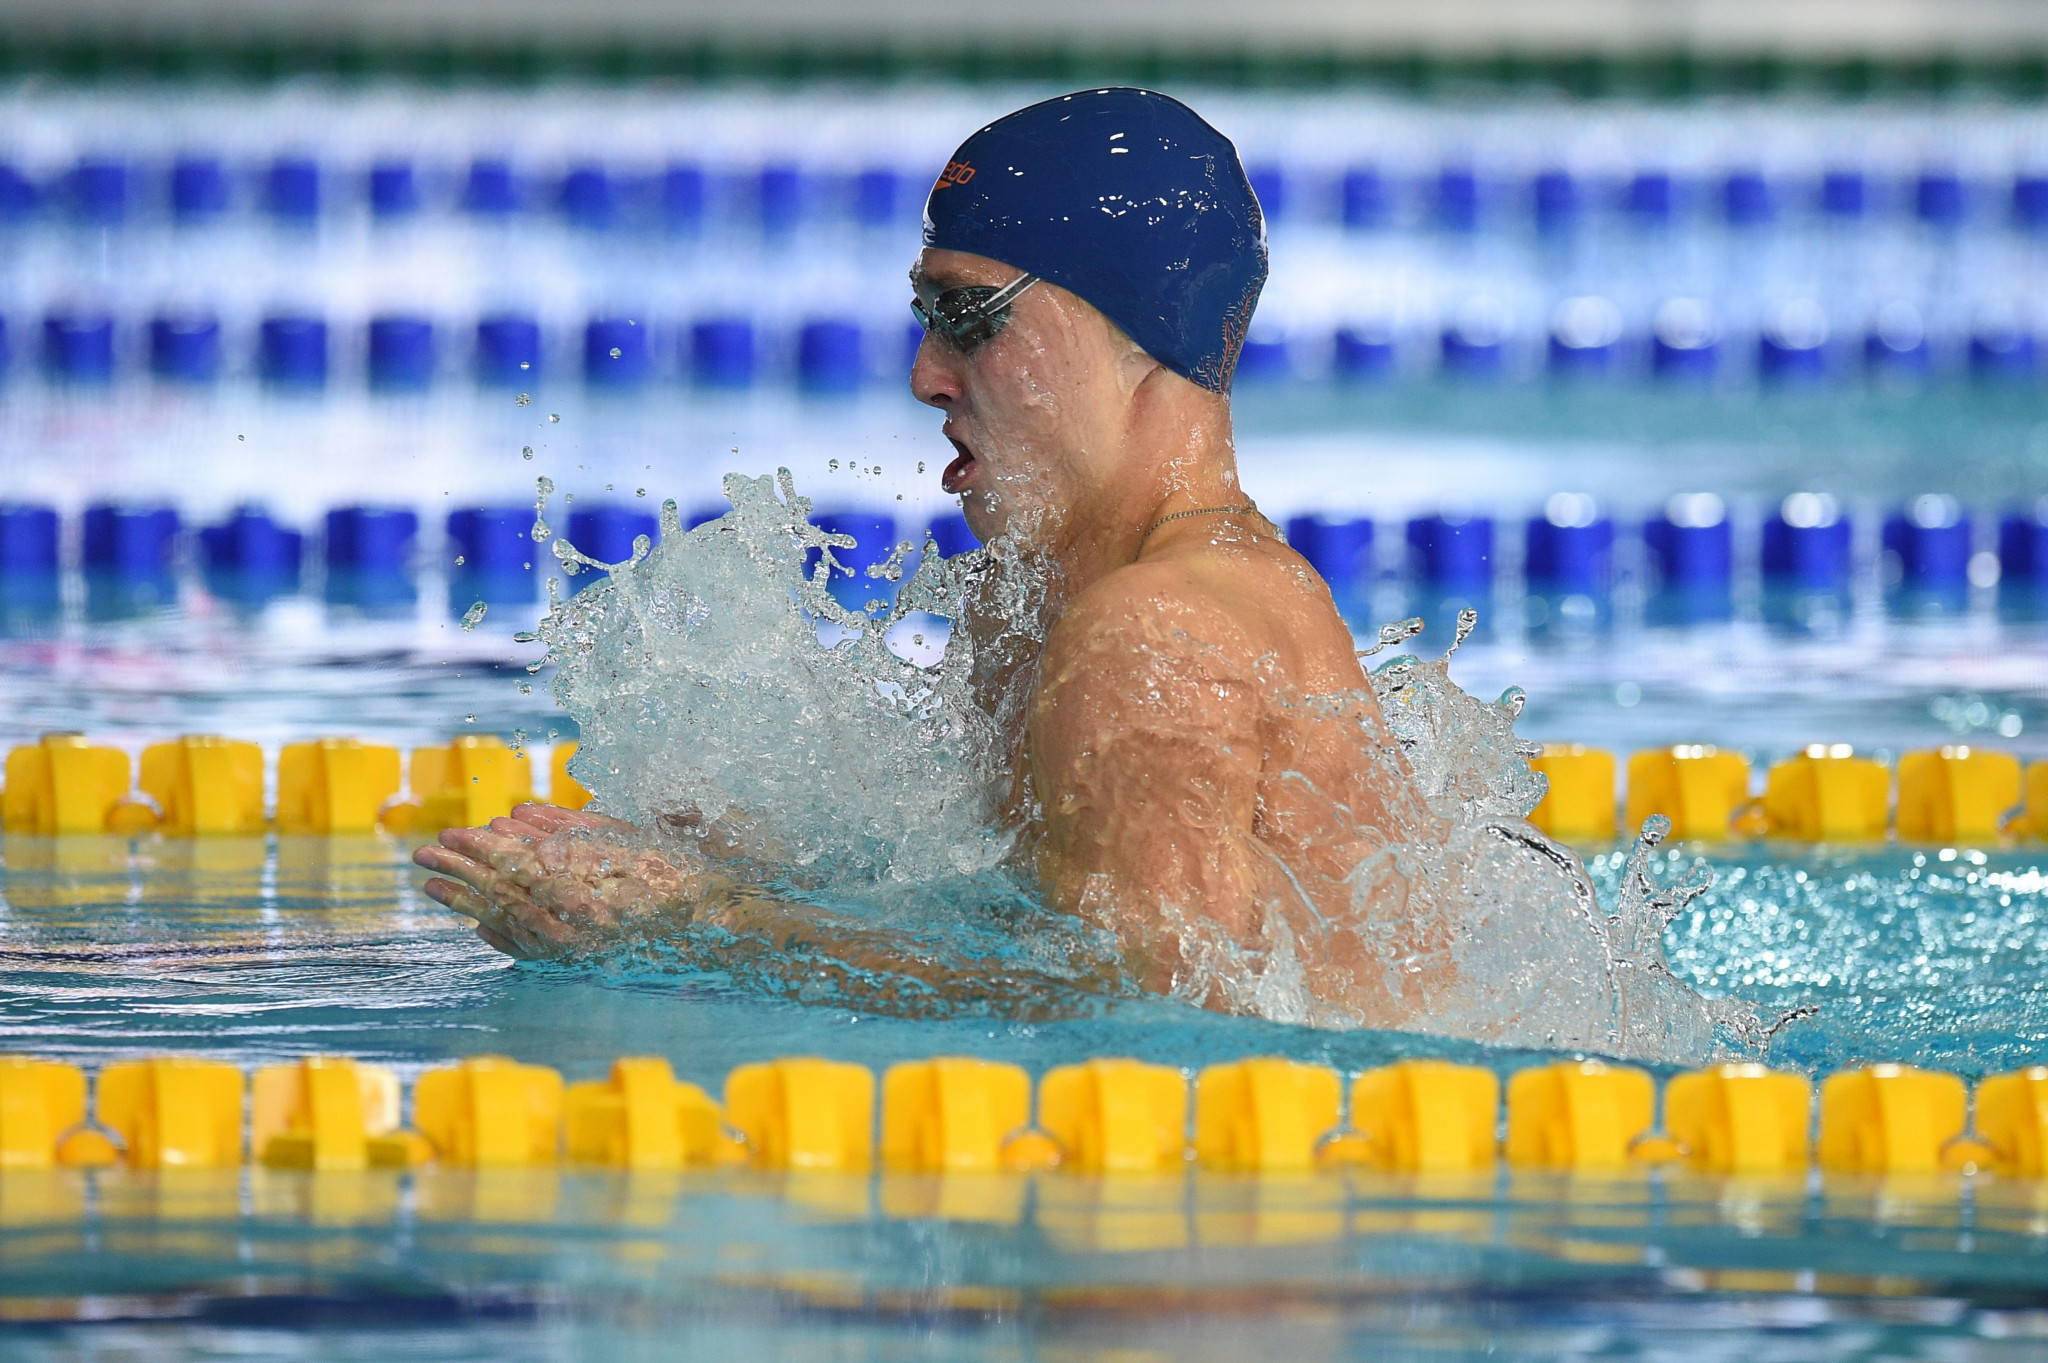 World champion Anton Chupkov broke his own European record to win the men's 200m breaststroke final ©Getty Images